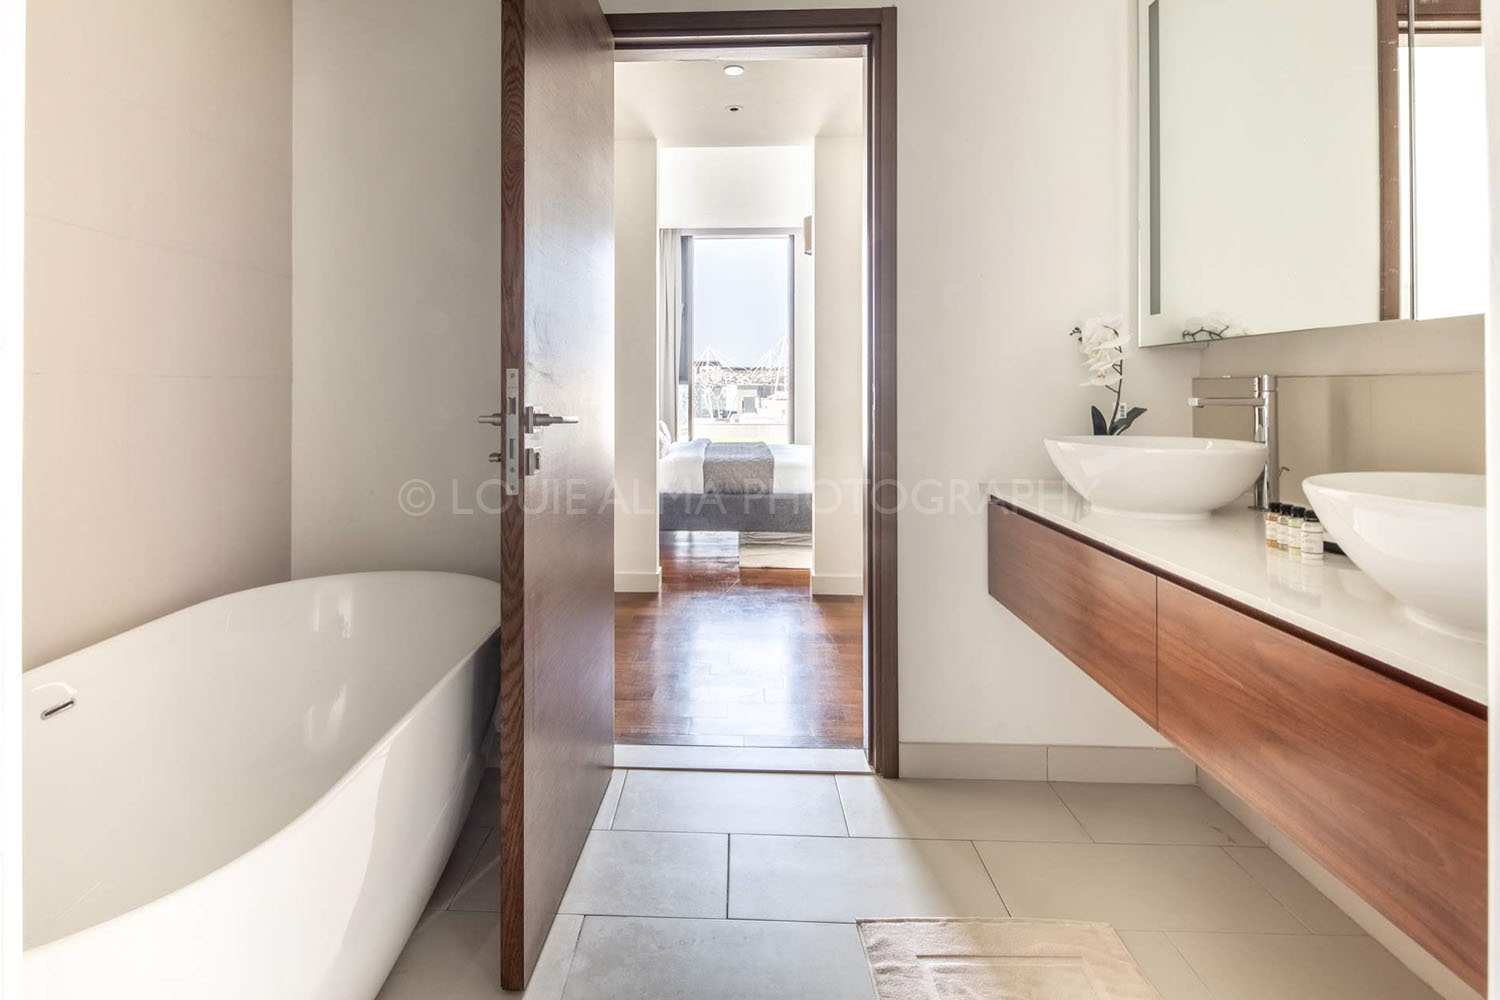 Real Estate Photography - Elegant and Classy Apartment in Citywalk, Dubai